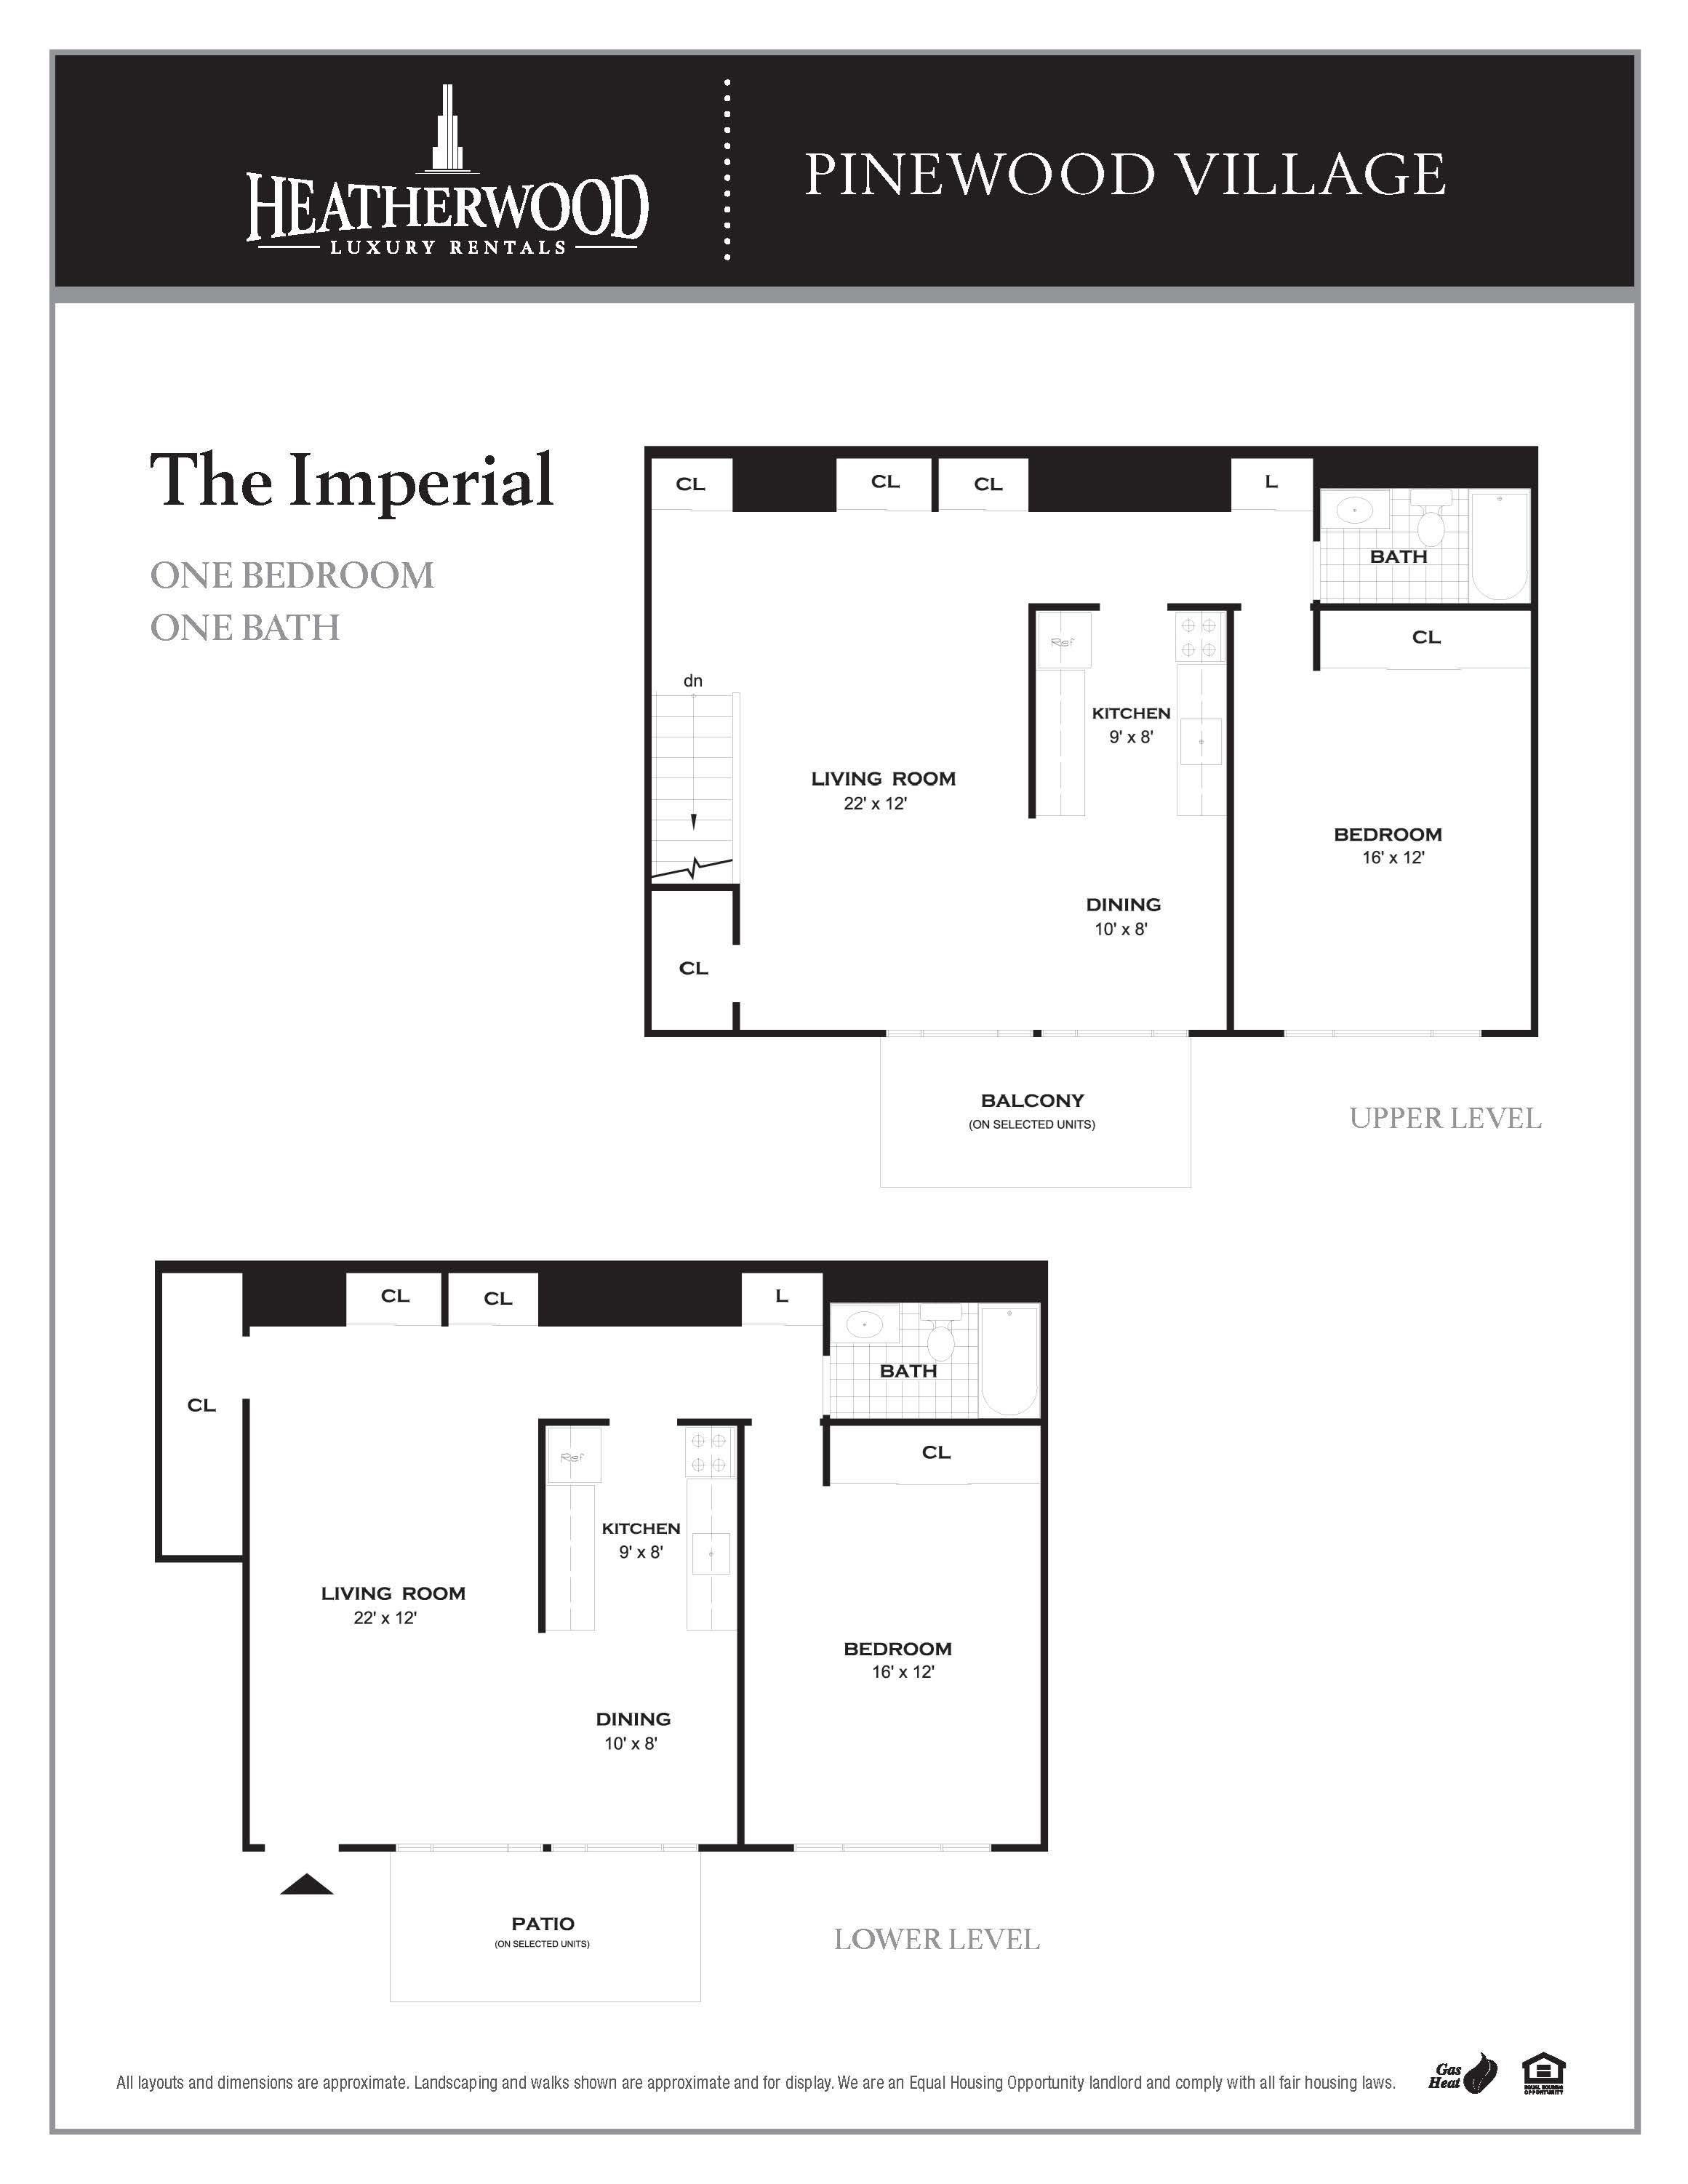 The Imperial Floorplan at Pinewood Village